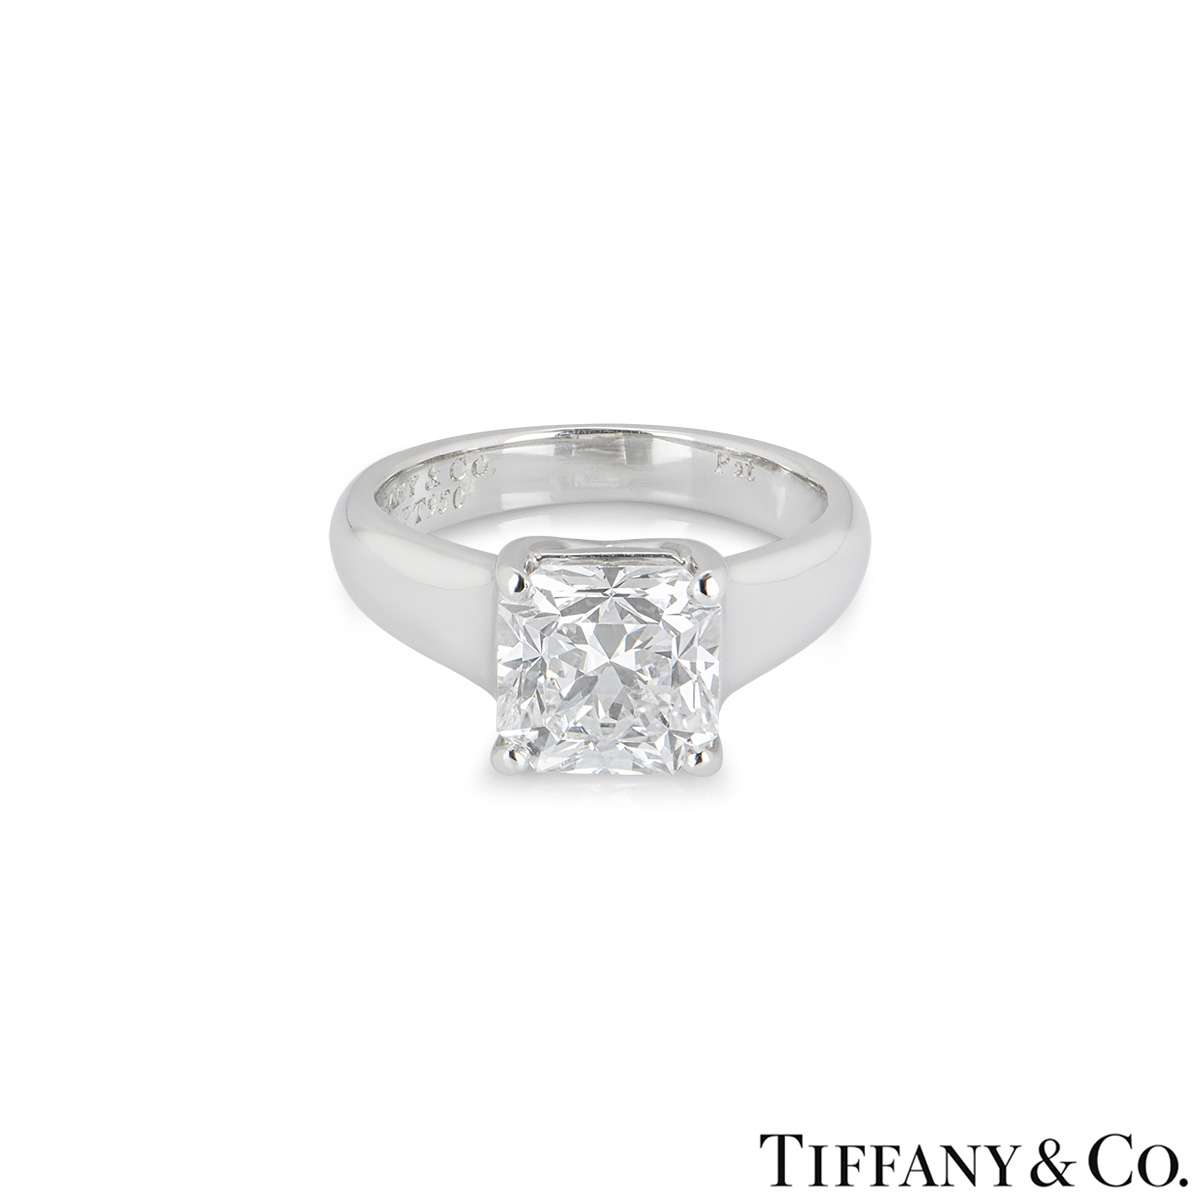 Tiffany & Co. Diamond Platinum Lucida Ring 2.08ct G/VS1